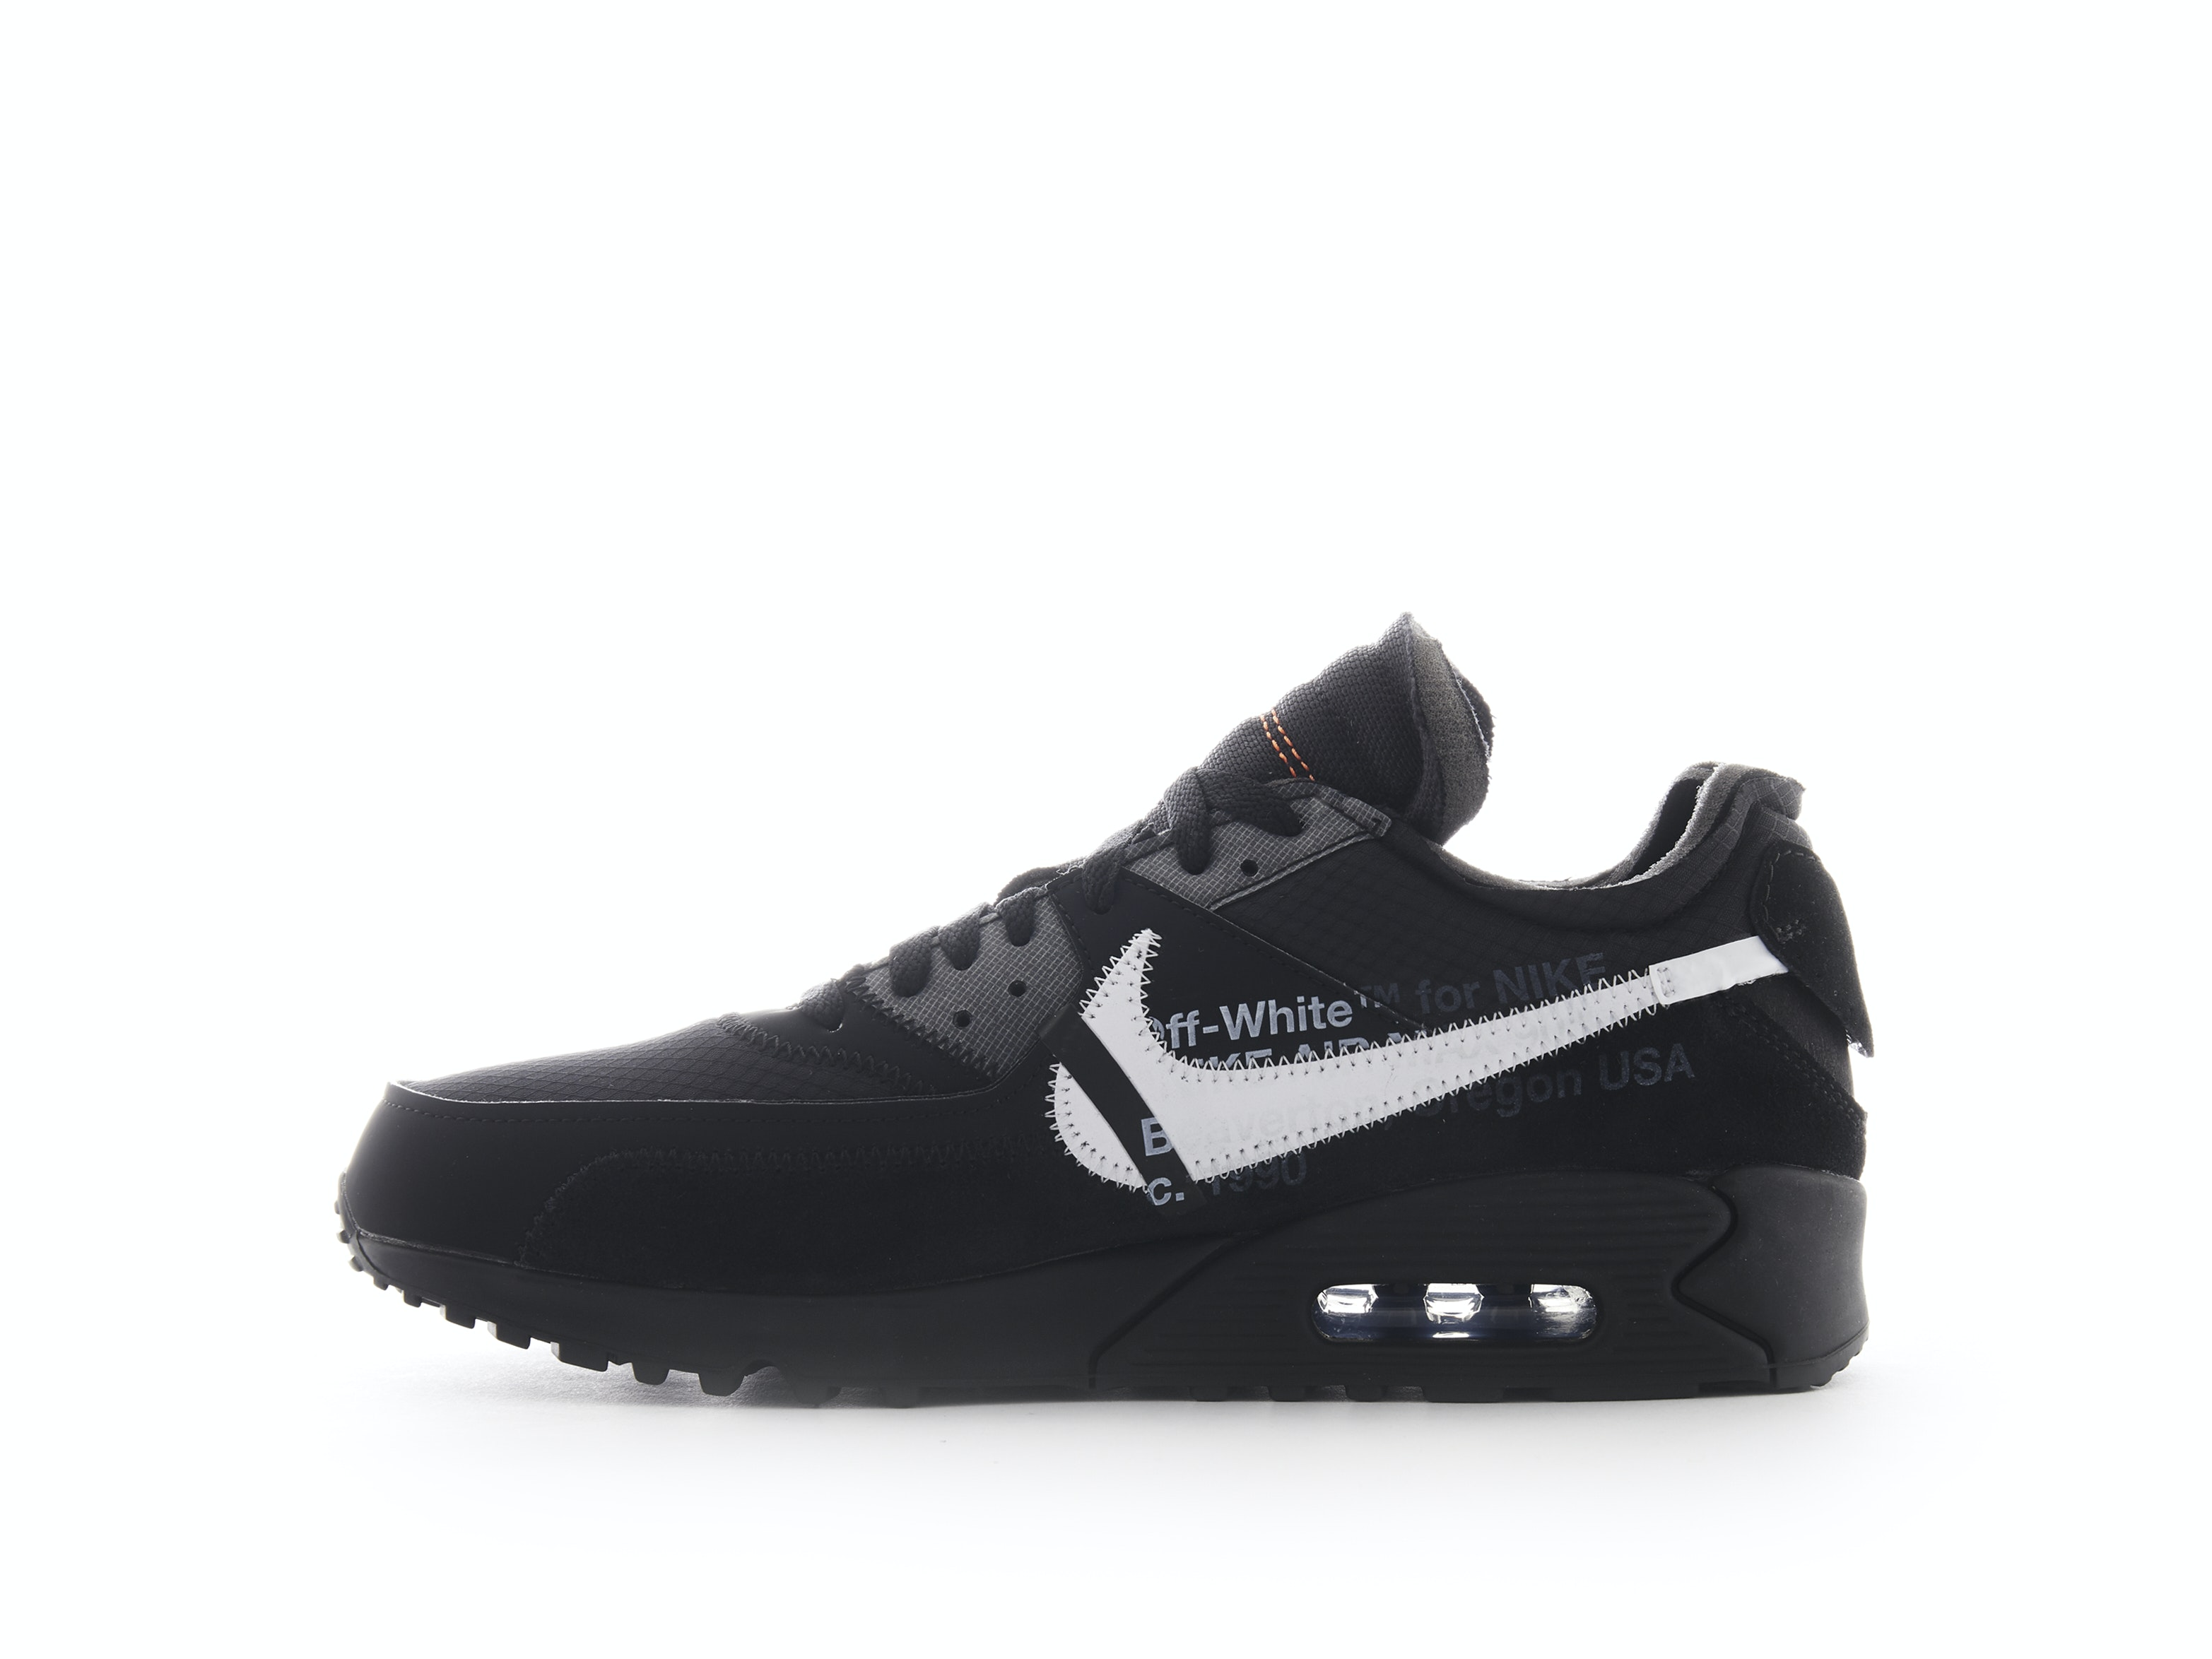 another chance 27c25 6bfe5 Air Max 90 Black x Off-White. 100% AuthenticAvg Delivery Time  1-2 days.  Nike   AA7293-001